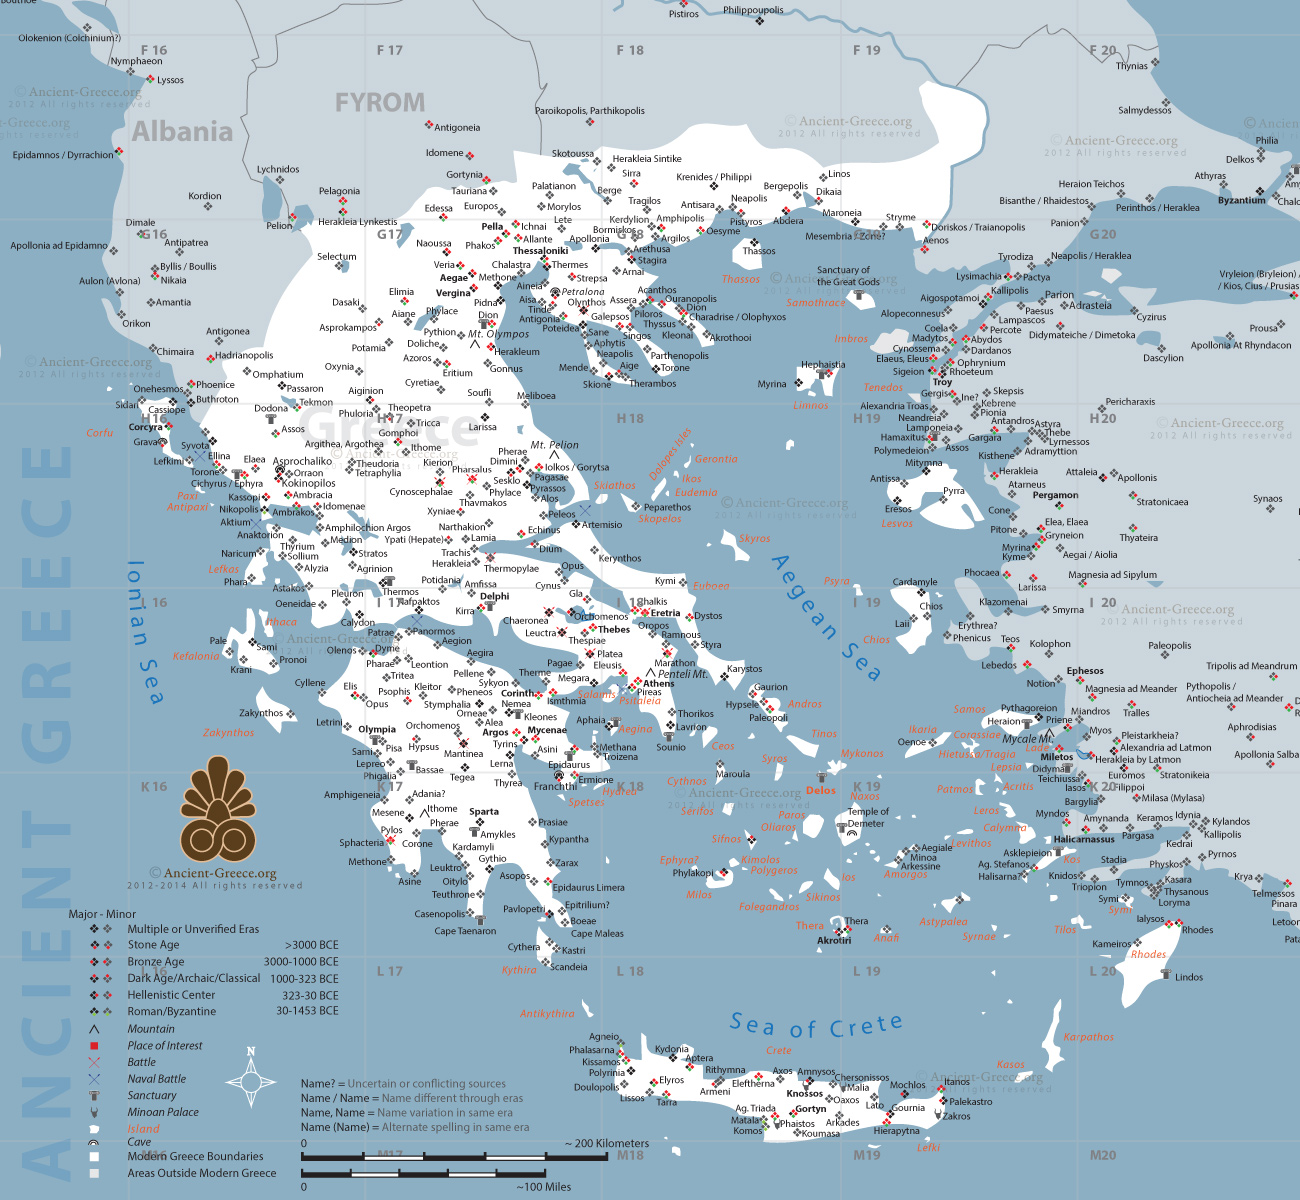 Map of Ancient Greece Map Of Mythic Greece on map of ephesus, map of macedonia, map of aegean sea, map of troy, map of corinth, map of middle east, map of ireland, map of mount olympus, map of mongolia, map of mediterranean, map mediterranean region, map of europe, map of united states, map of santorini, map of africa, map of judea, map of european countries, map of athens, map of the west indies, map of india,